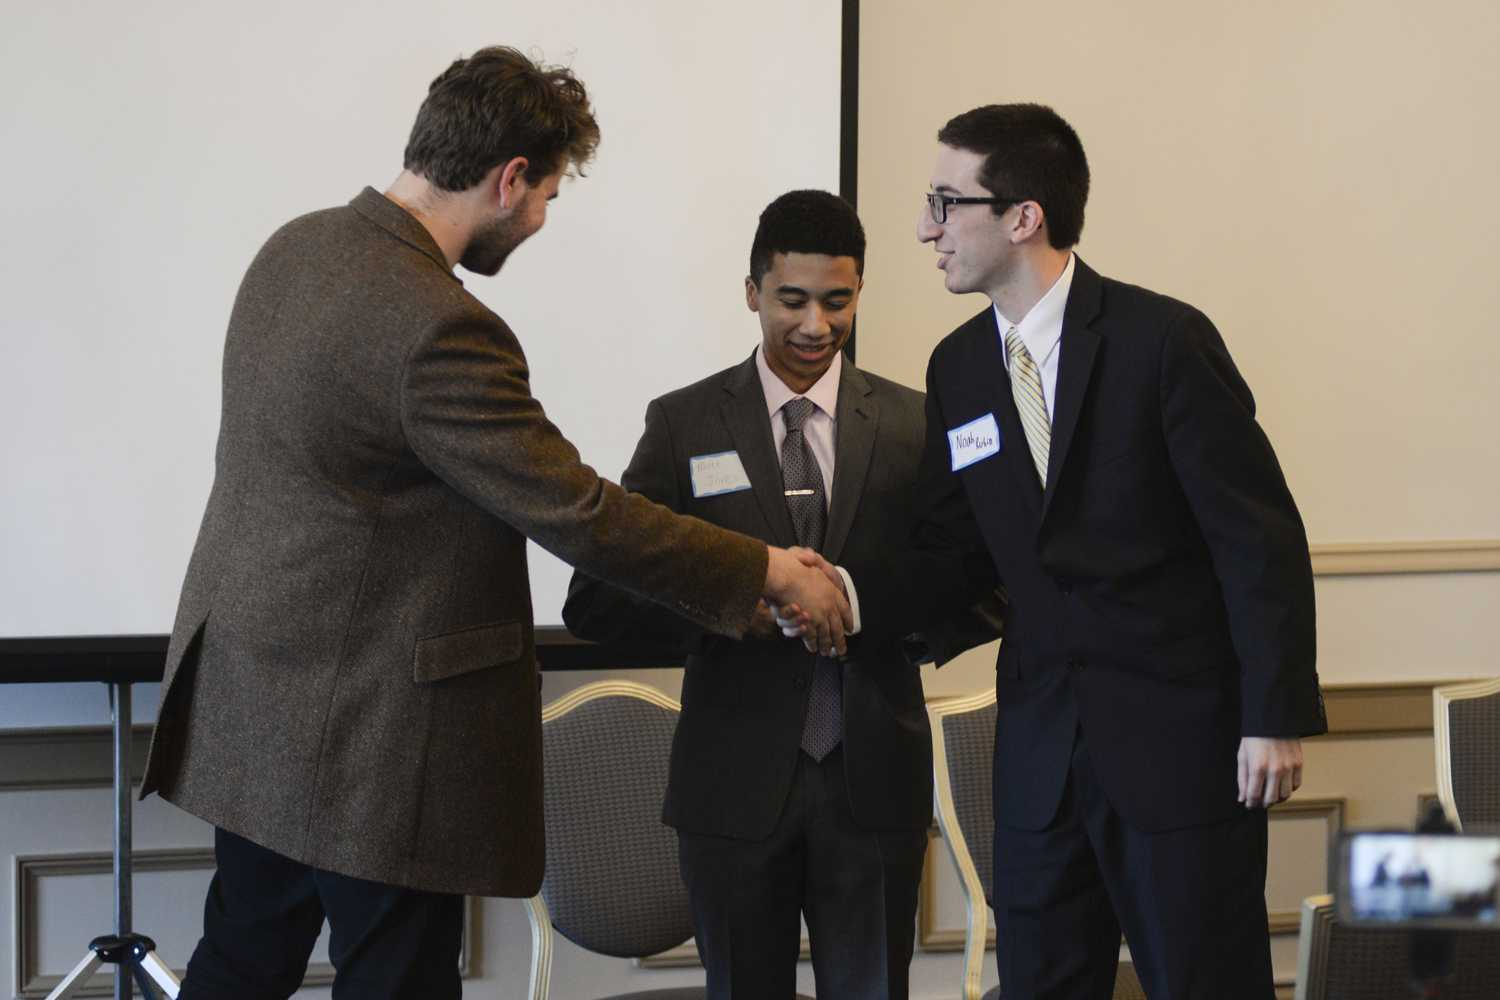 Andrew Dow (left), the host of Pitt Tonight, greets candidates Matt Jones and Noah Rubin (right) at the 2018 Meet the Candidates event in the William Pitt Union dining room. (Photo by Sarah Cutshall | Staff Photographer)